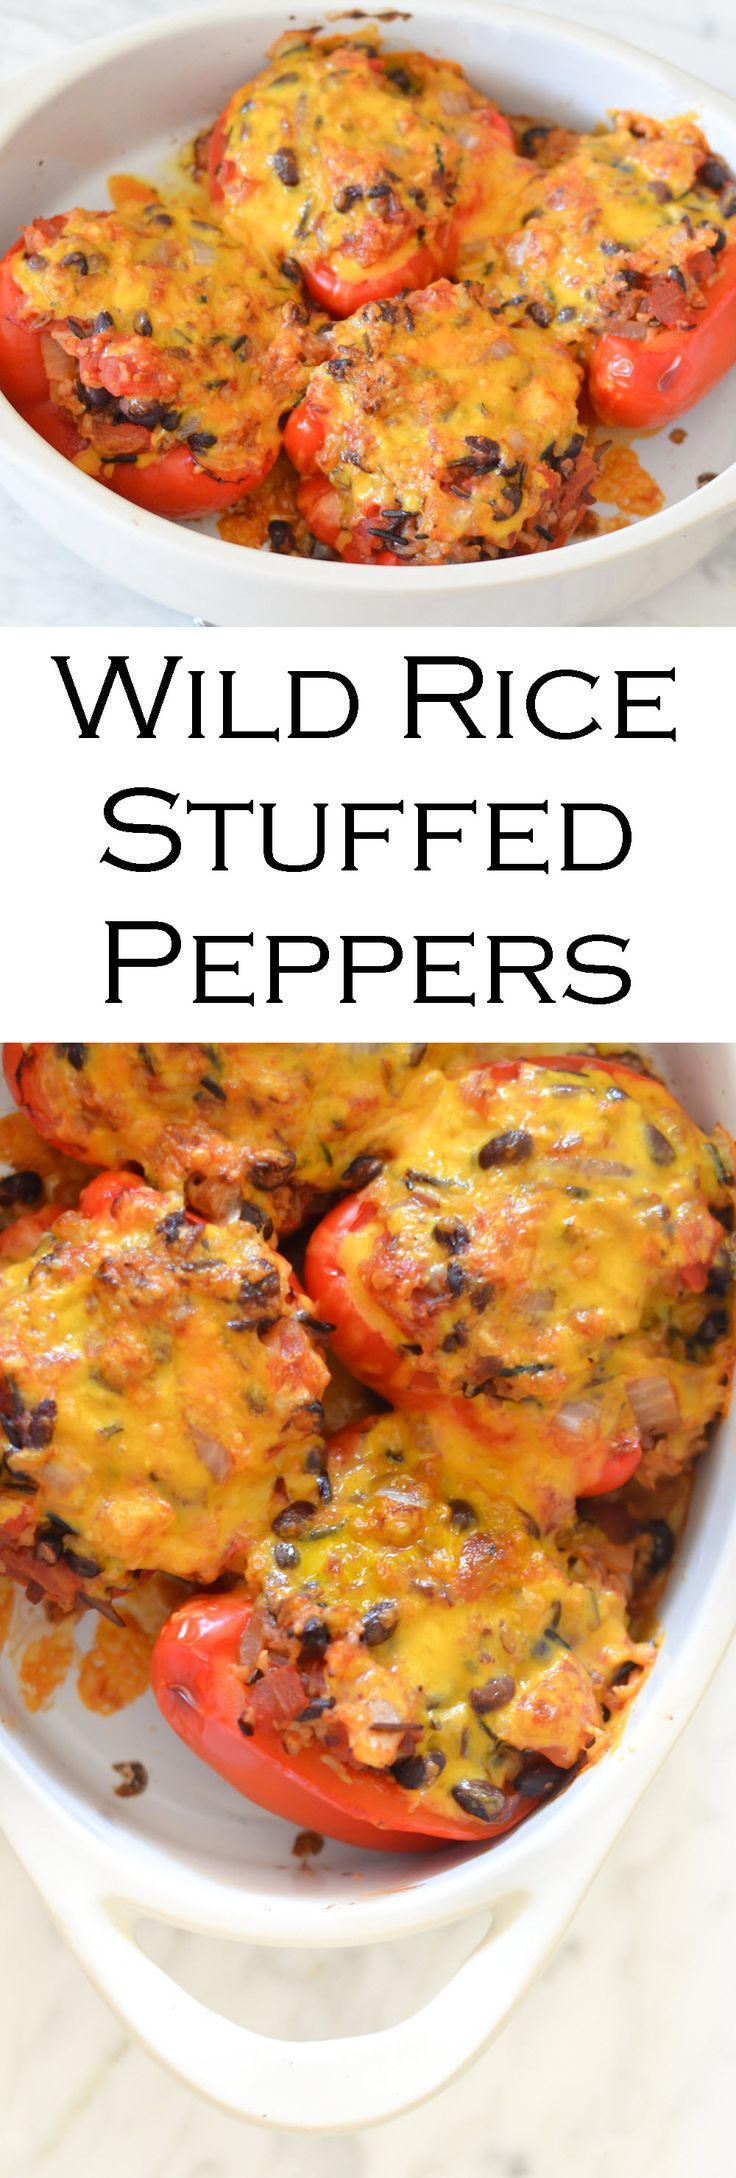 These Wild Rice Stuffed Peppers are the perfect way to treat yourself any day of the week!